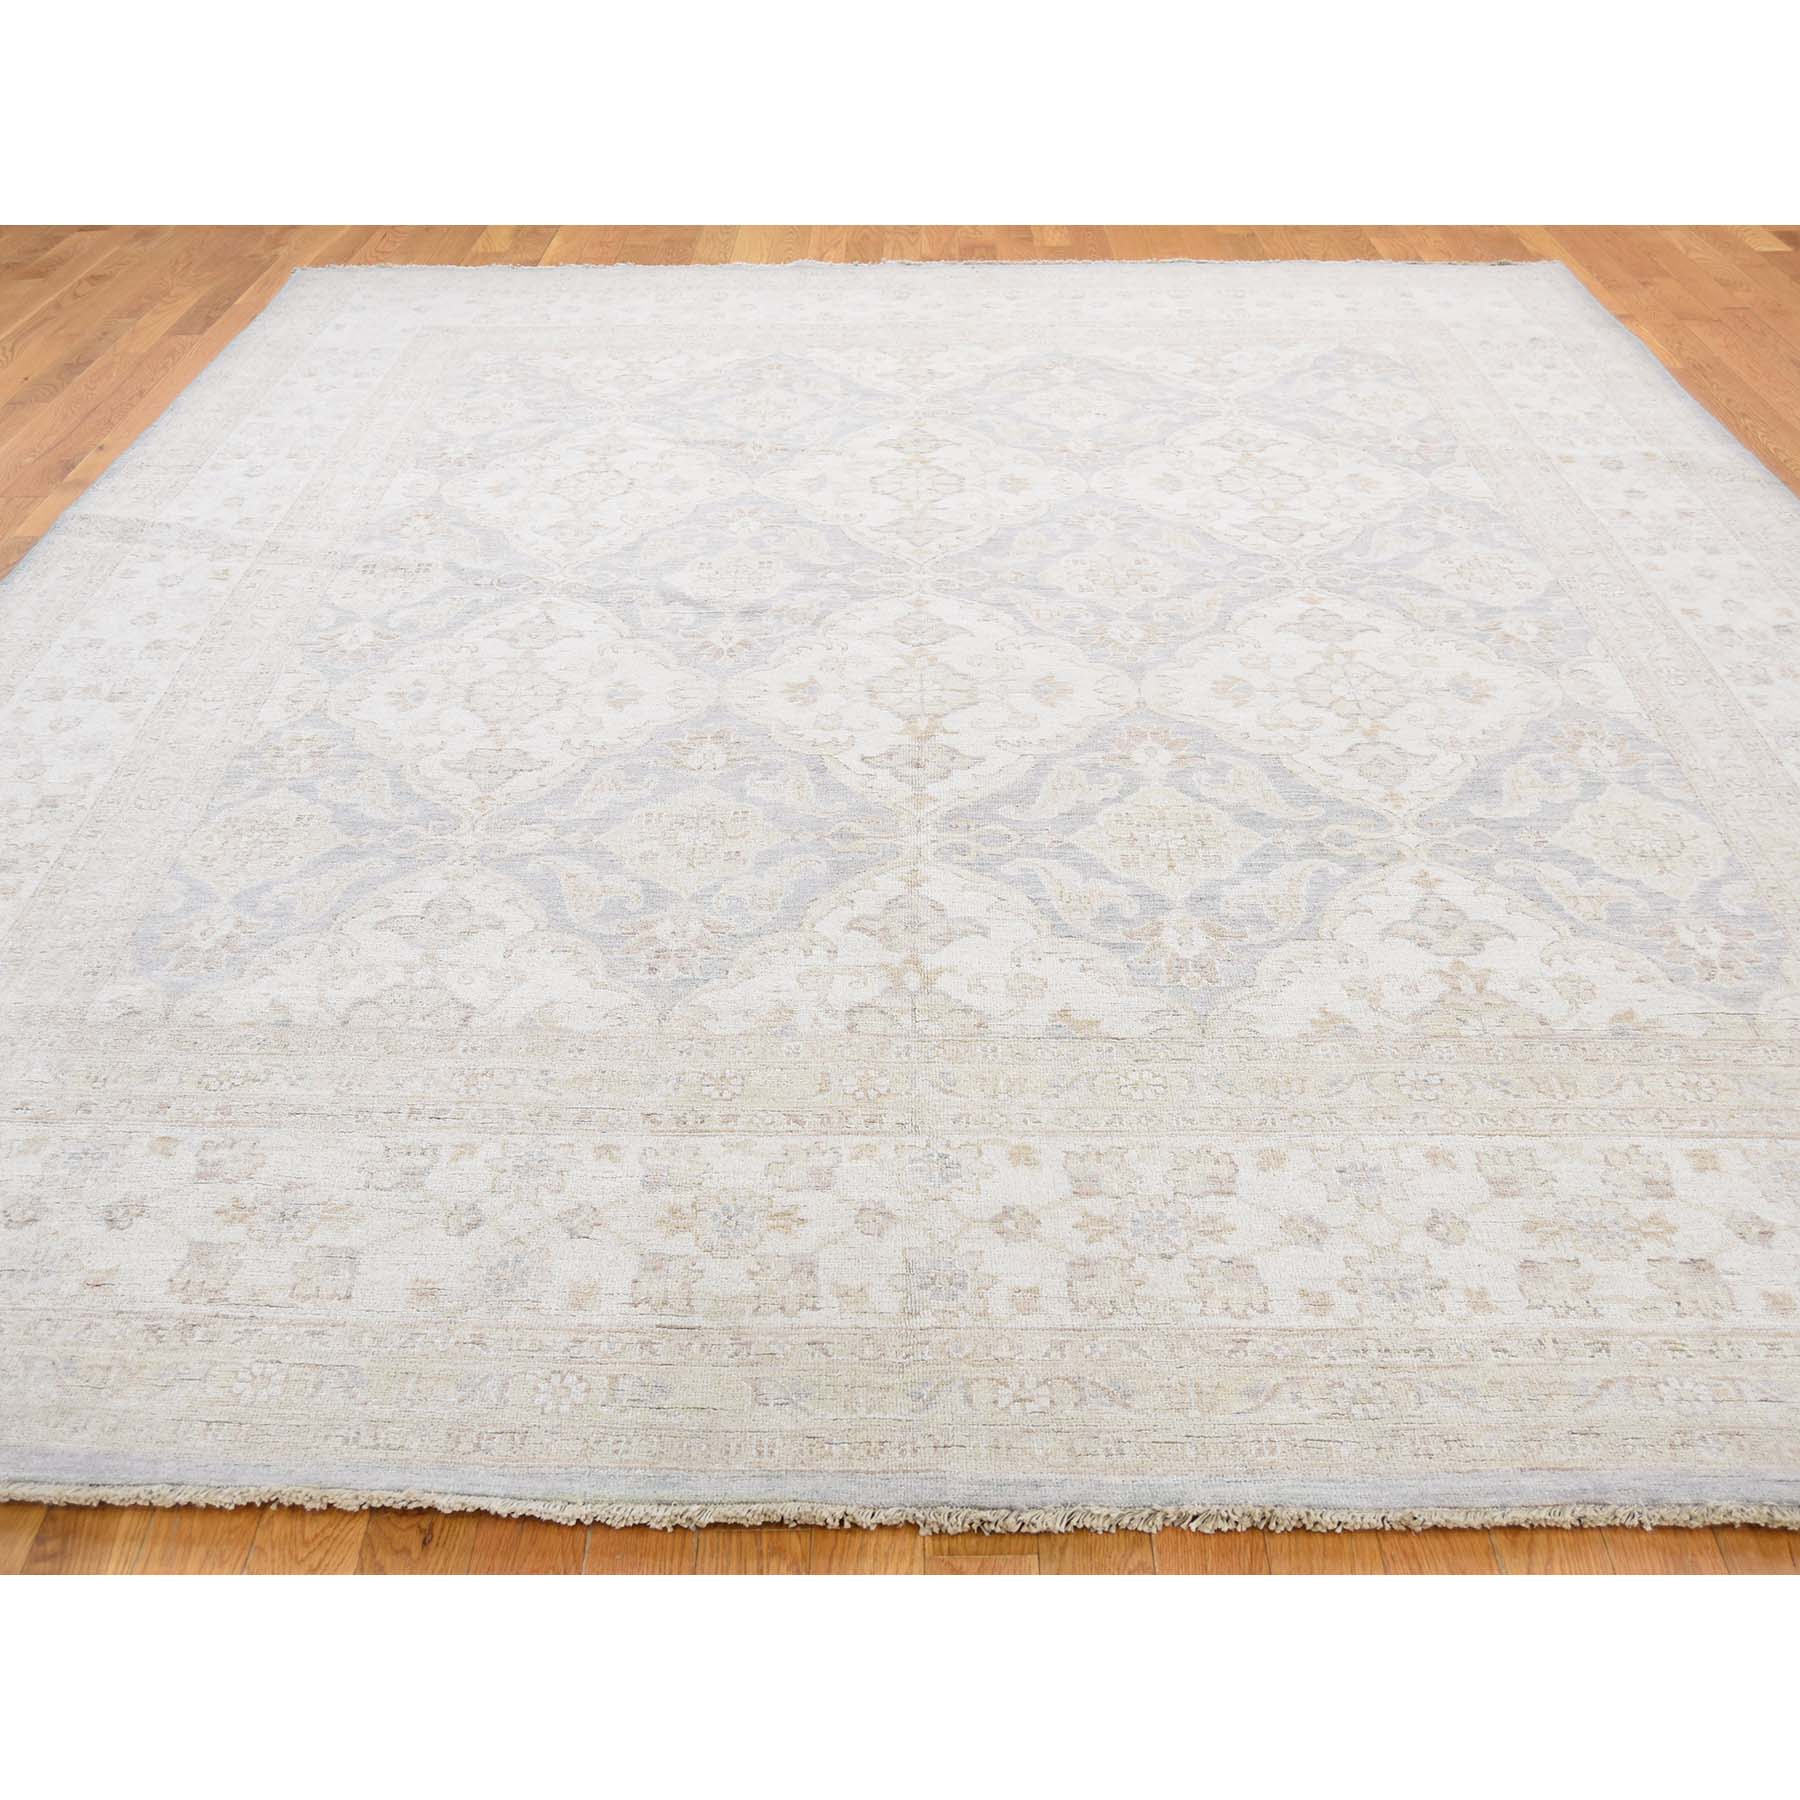 9-2 x10-9  Pure Wool Hand-Knotted Washed Out Peshawar Oriental Rug